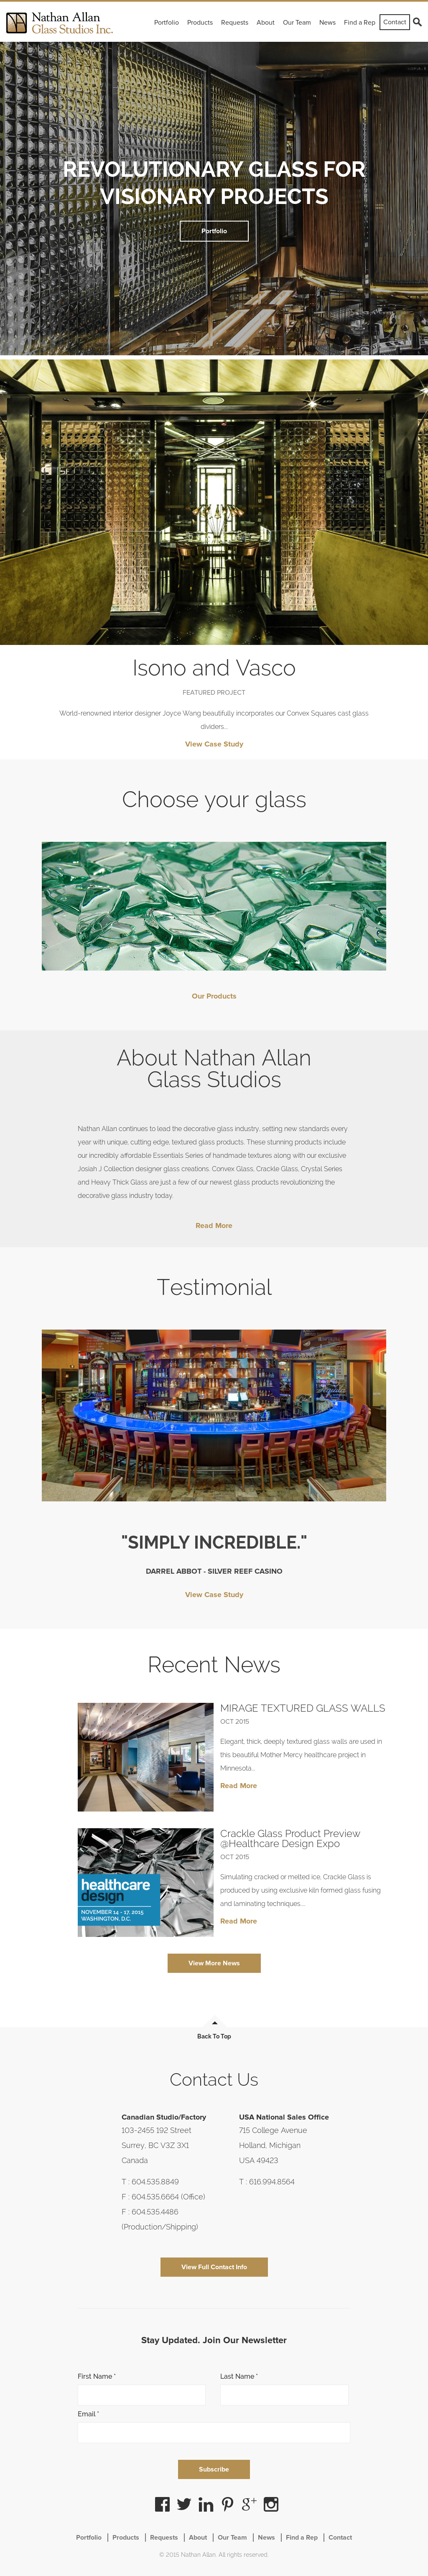 Nathan Allan Glass Studios Competitors, Revenue and Employees ...